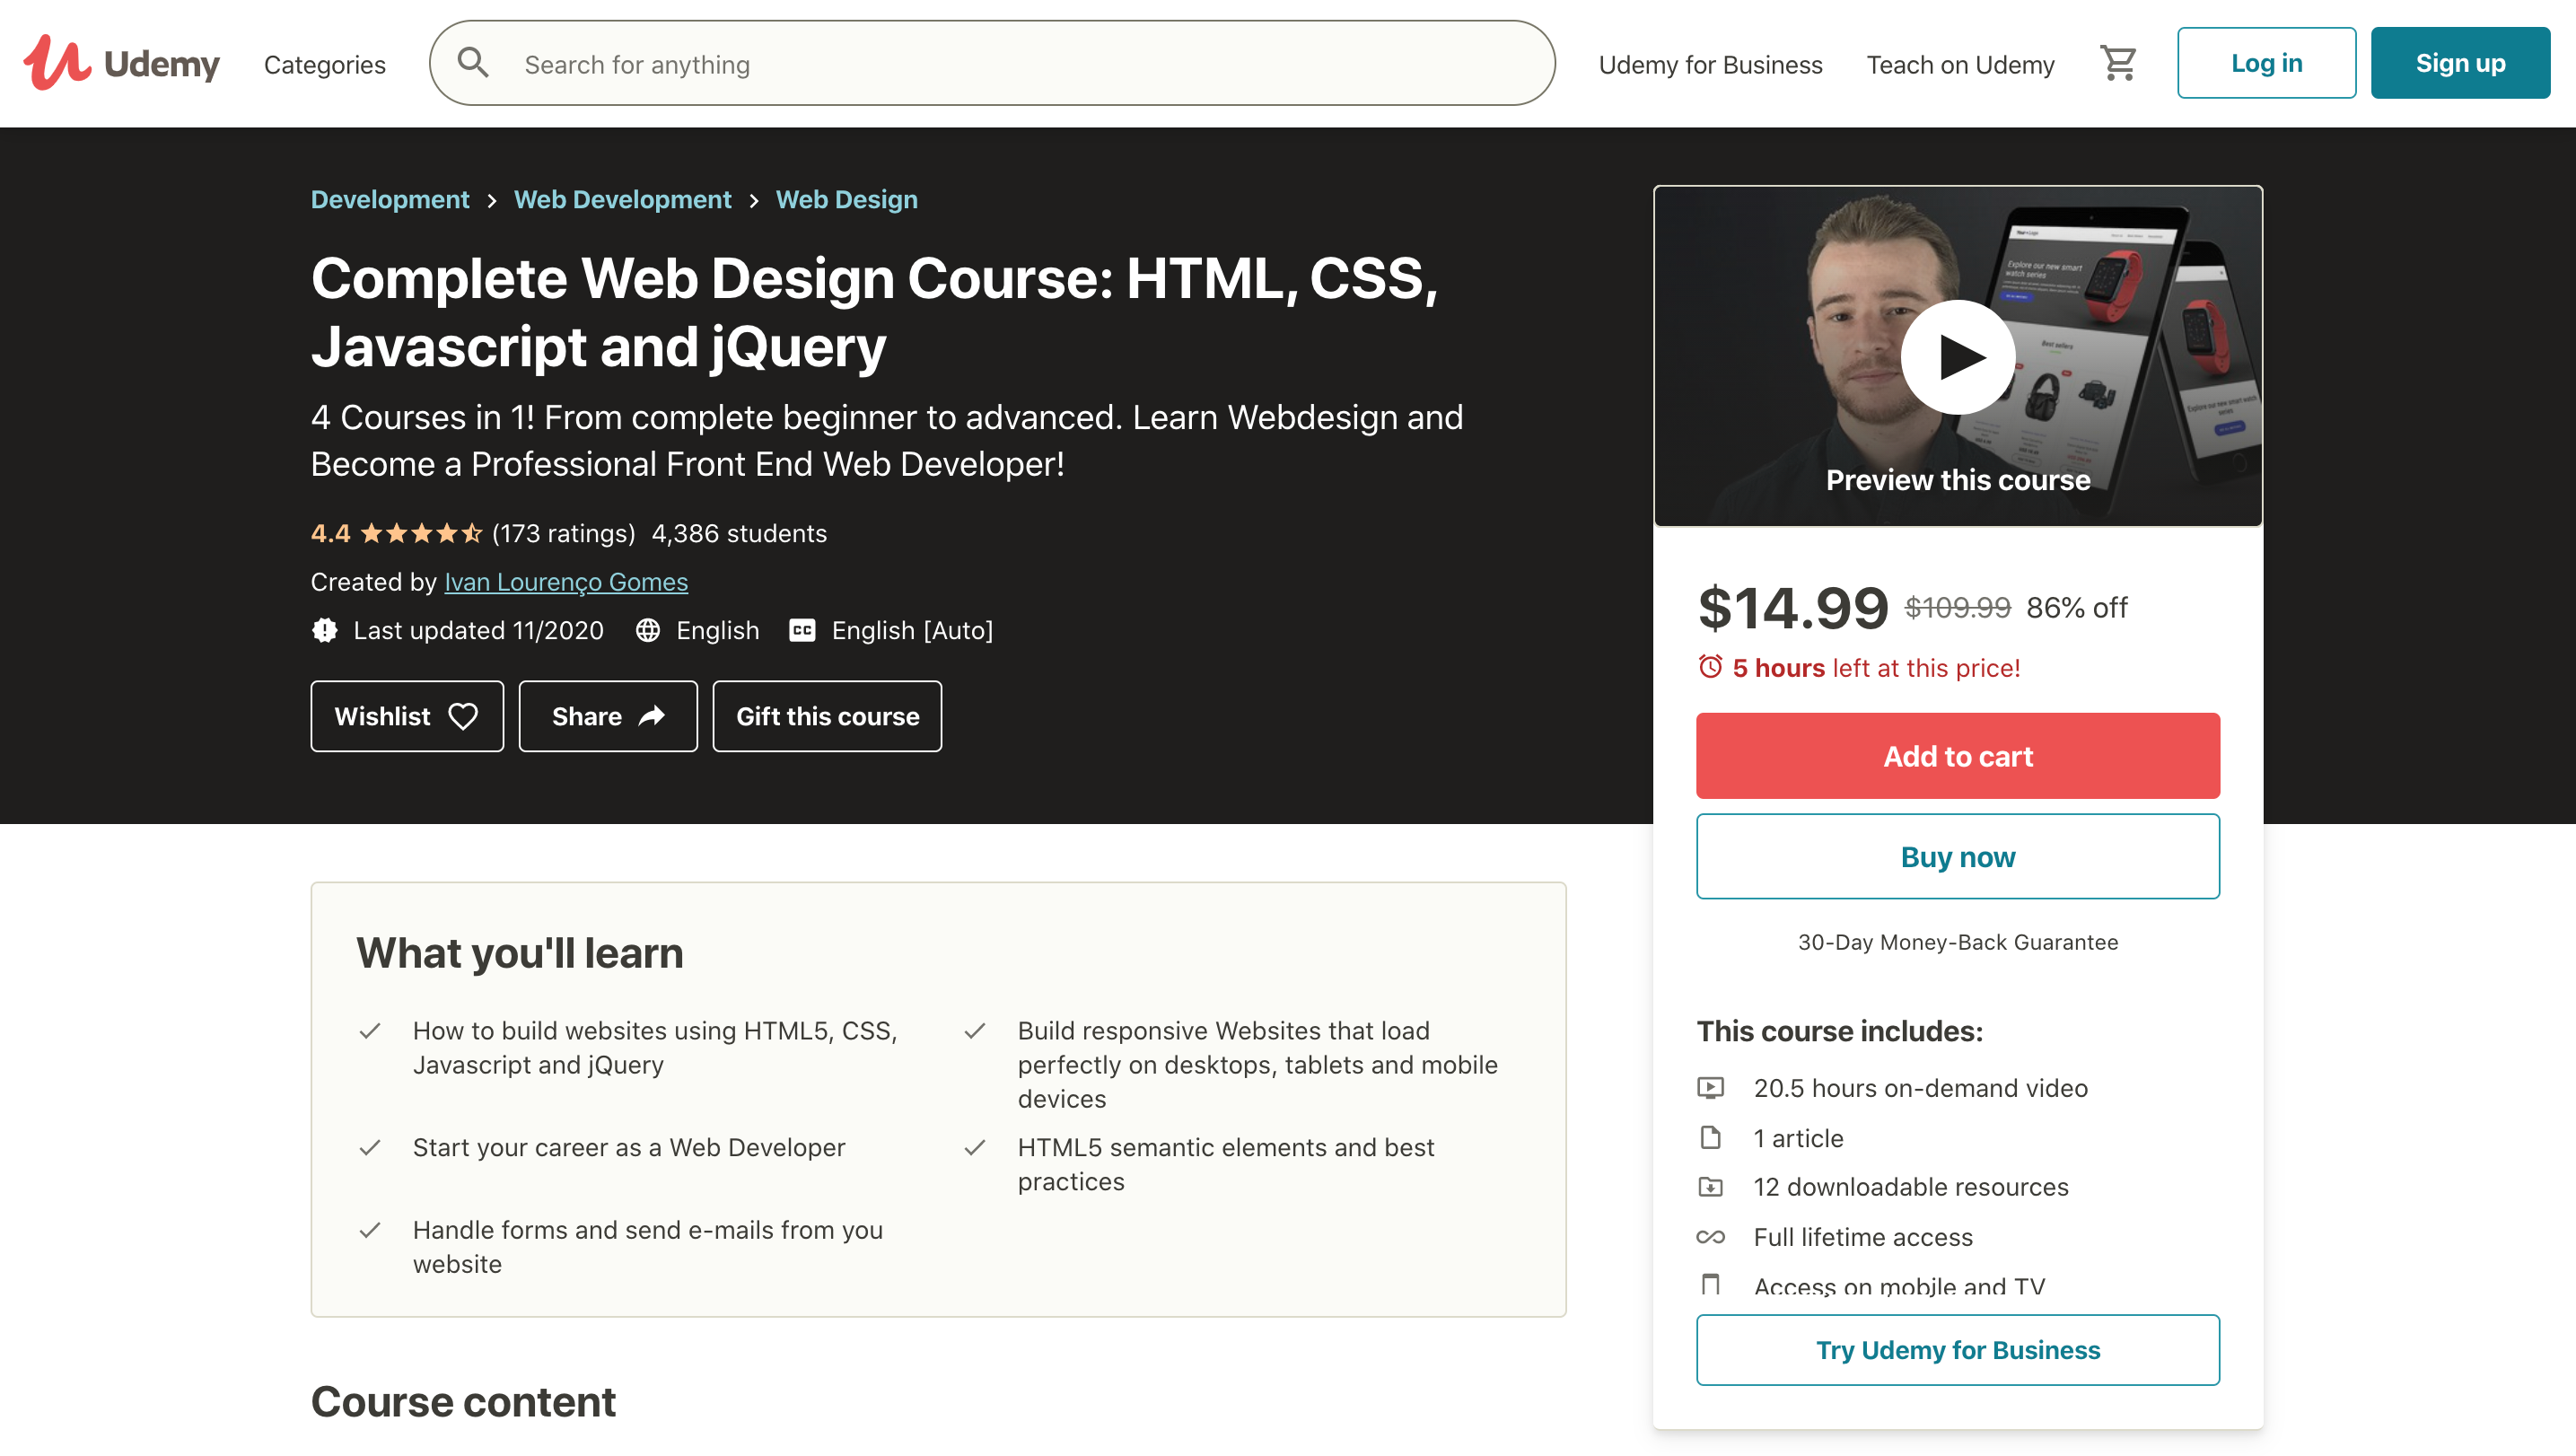 Complete-Web-Design-Course-HTML-CSS-Javascript-and-jQuery-Udemy